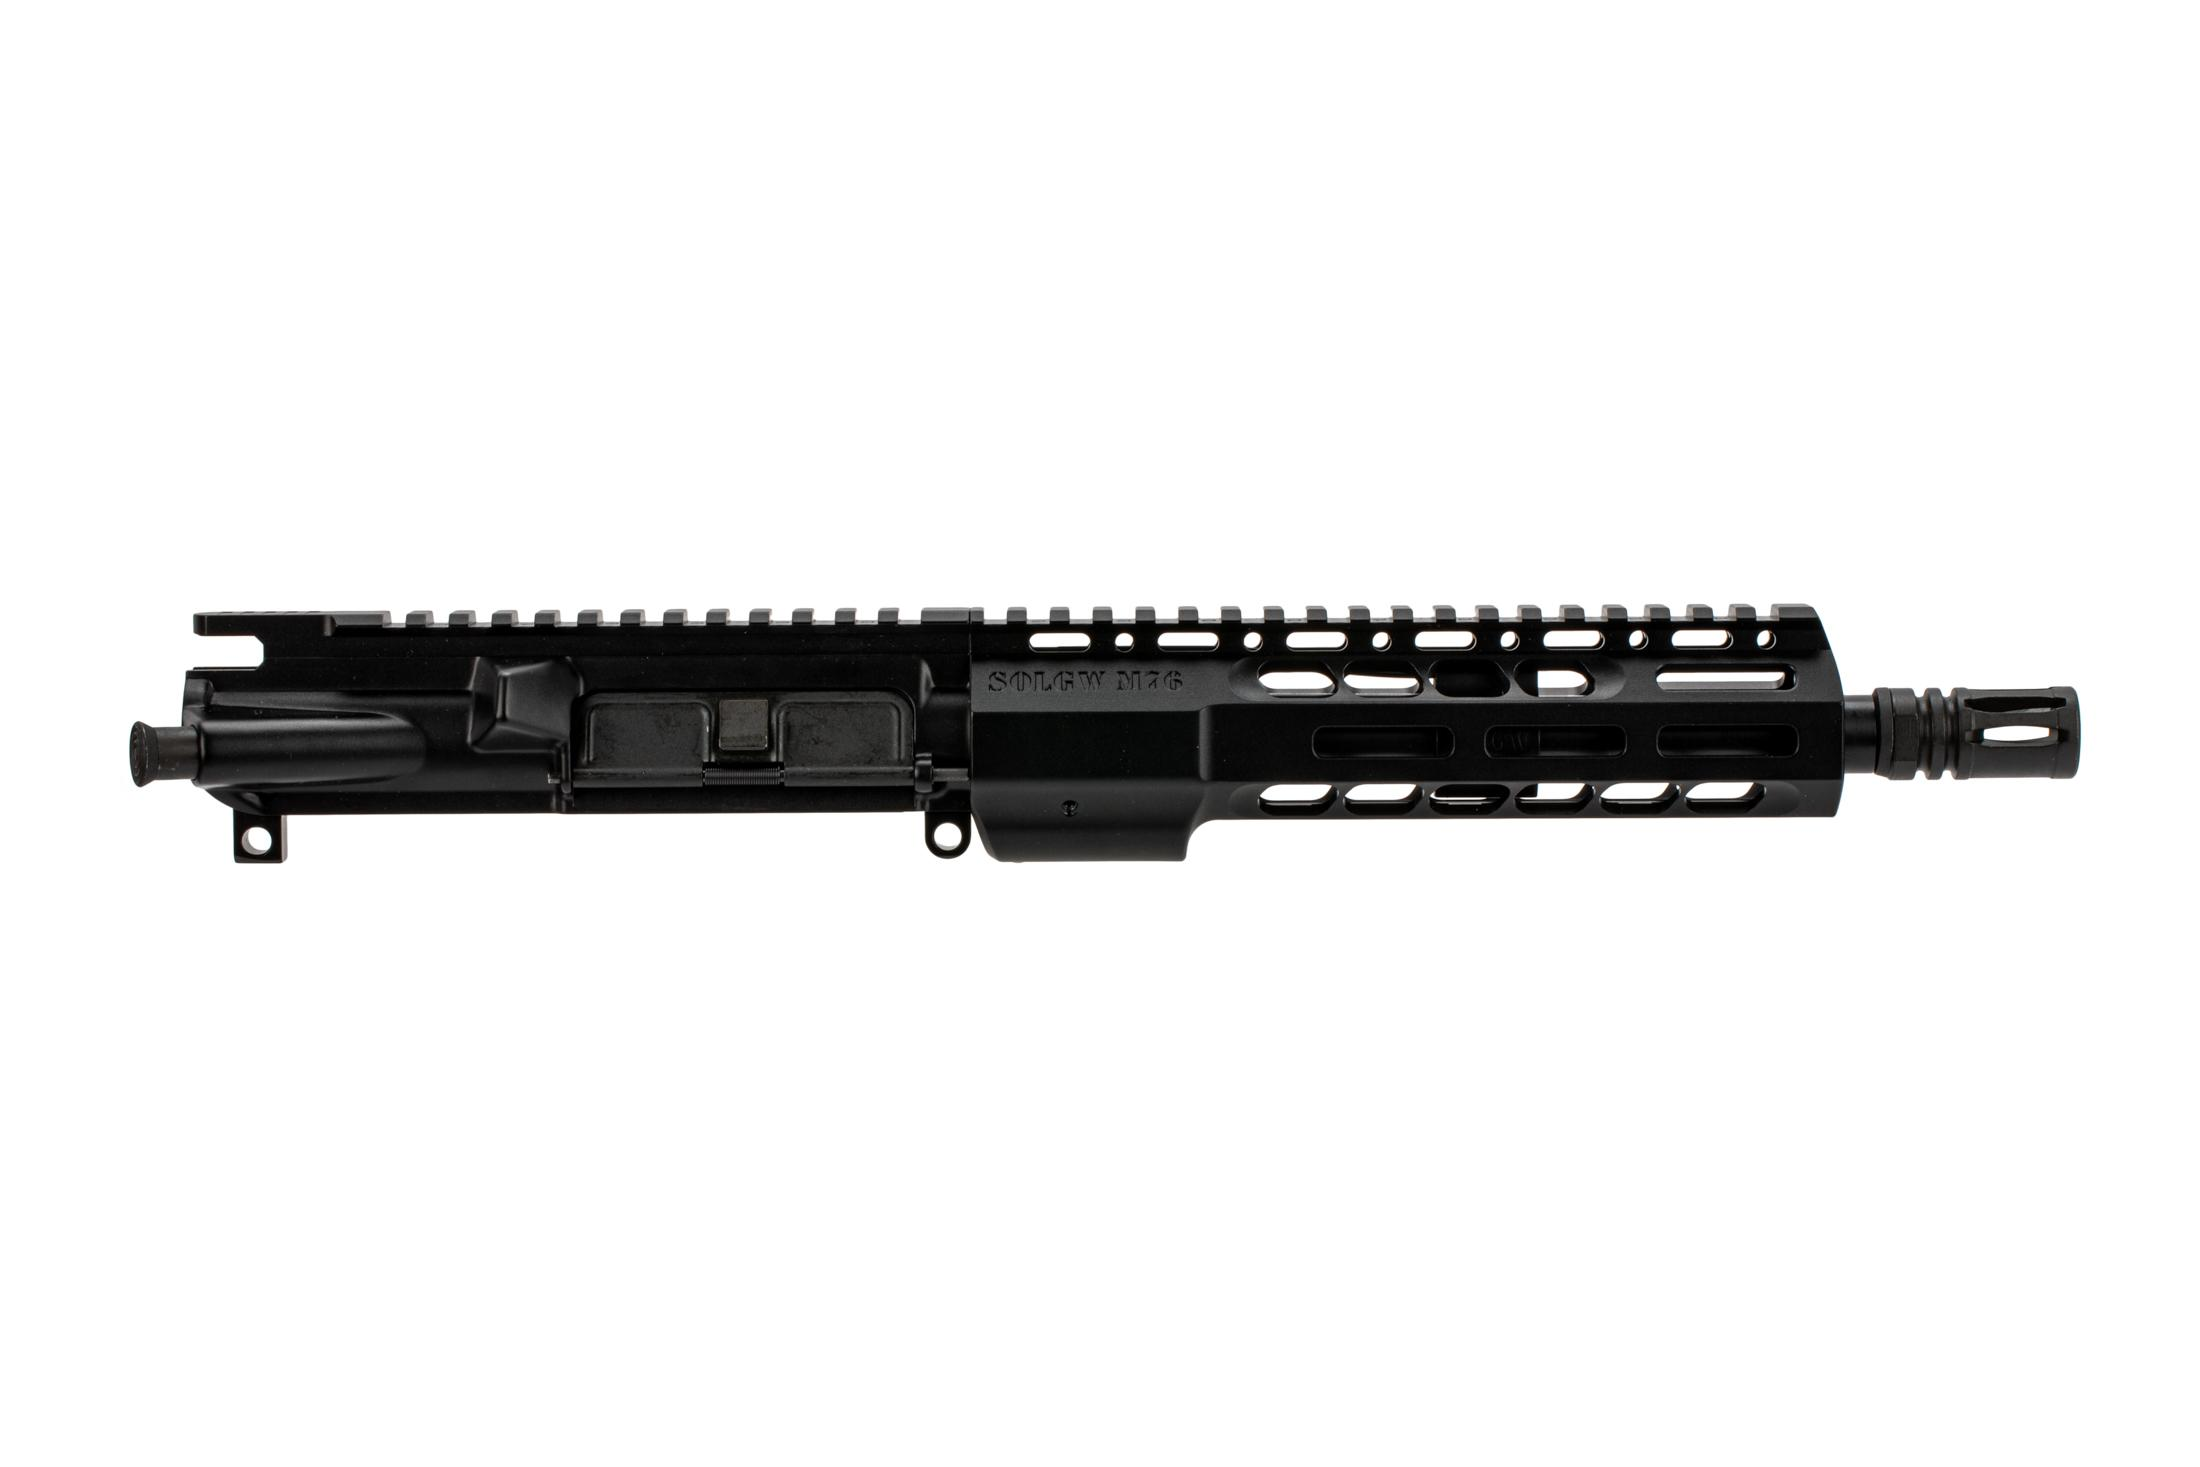 SOLGW M4-76 9 barreled upperfor the AR-15 in 300 blk with pistol length gas system